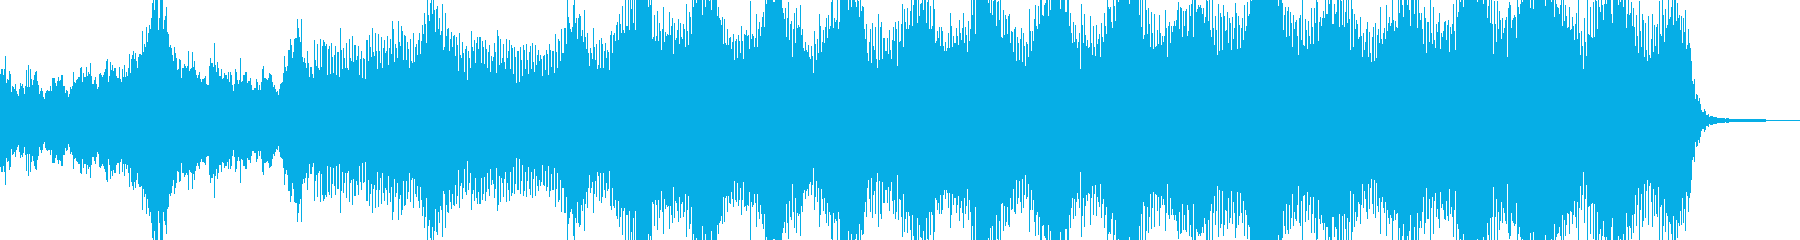 Produce undead and bloody horror A's reproduced waveform